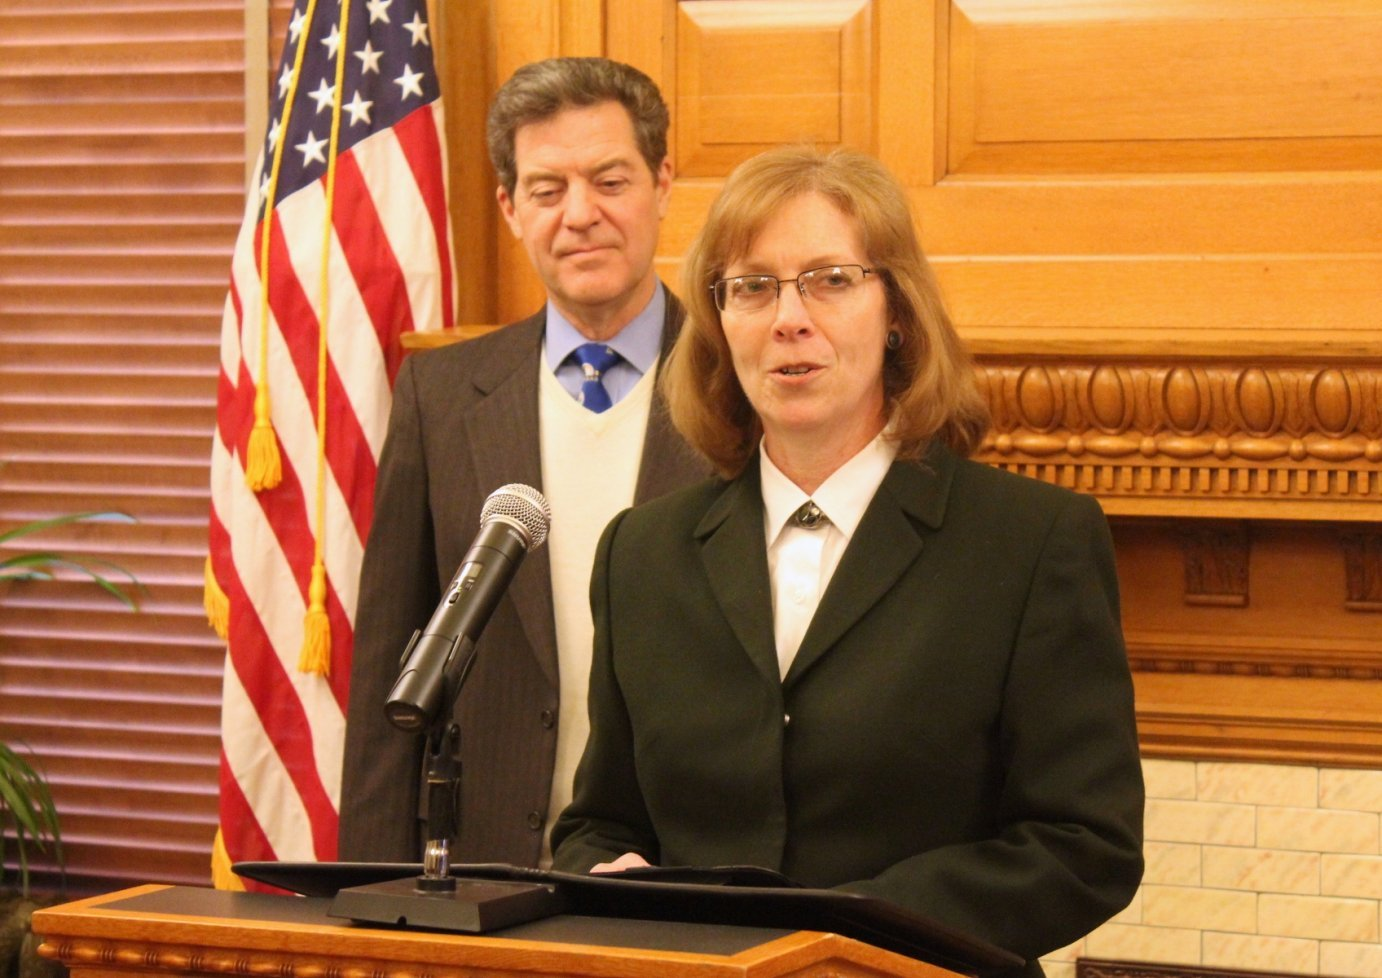 Kathryn Gardner speaking after Governor Brownback announced her nomination in January. (Photo by Stephen Koranda)